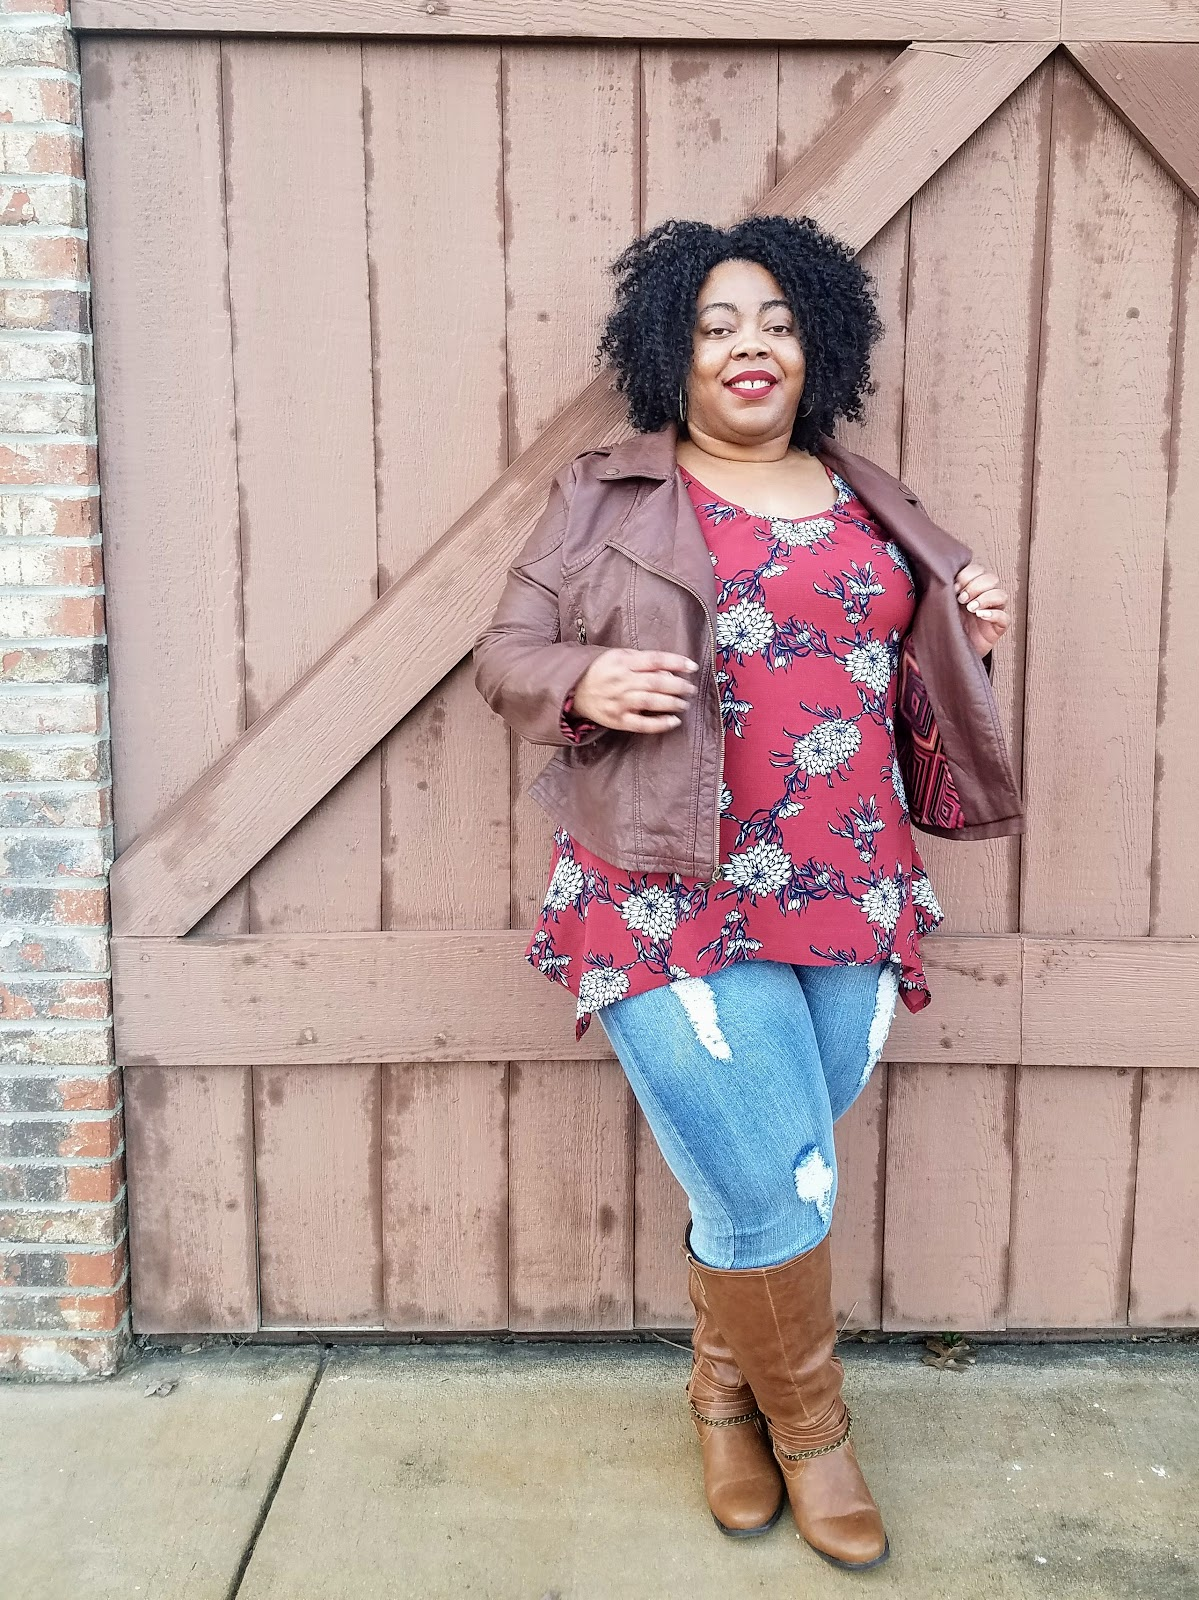 Floral print, ripped jeans, tall boots, natural hair, red lips, thick thighs, curvy blogger